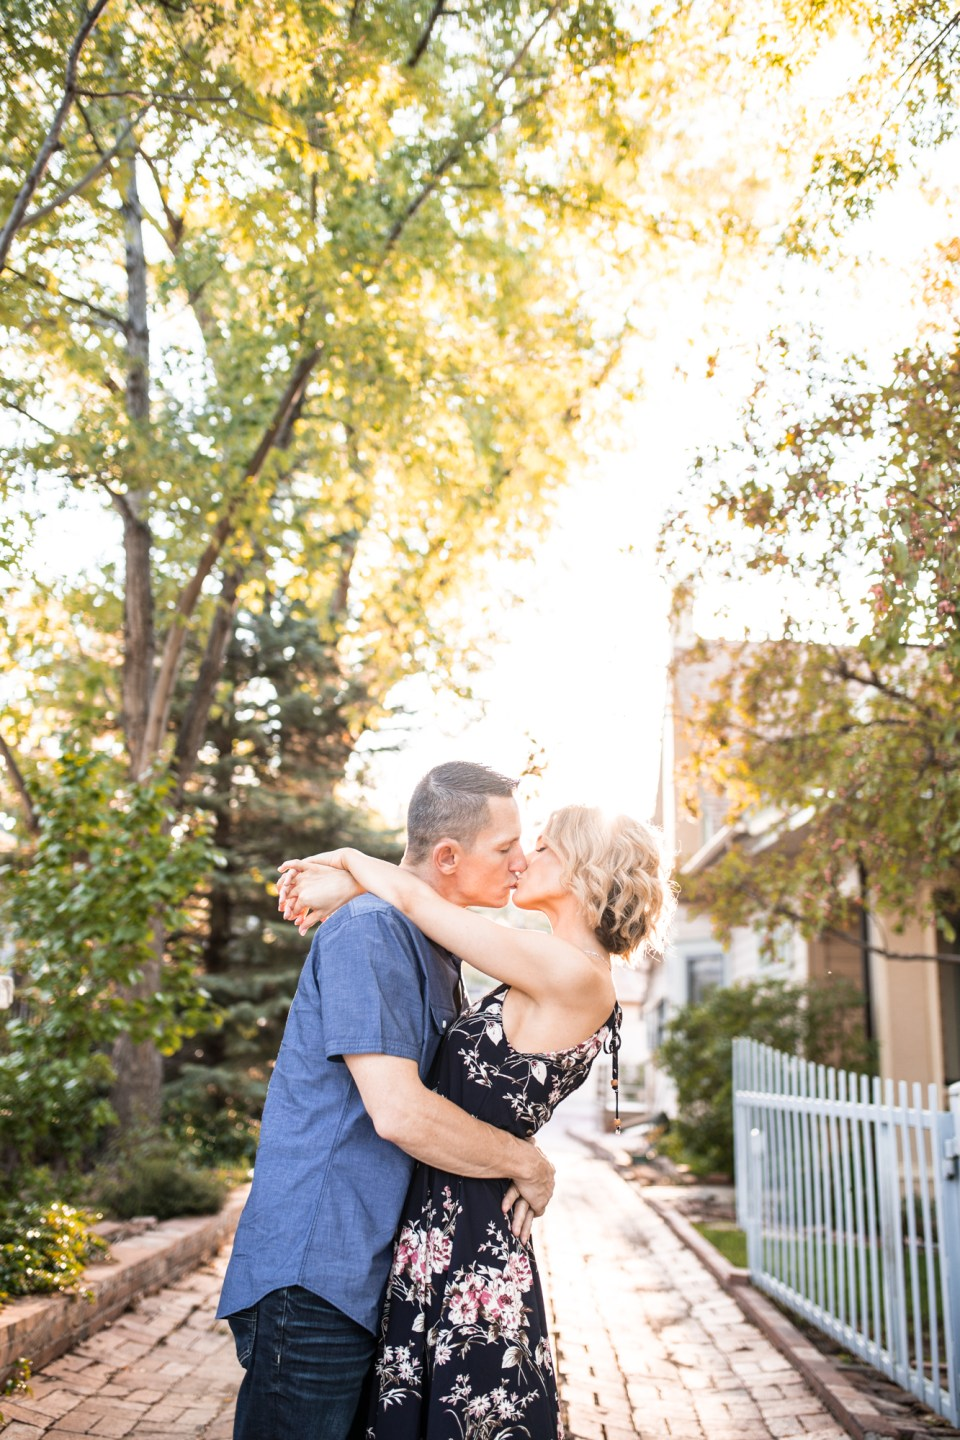 Prescott Winery Engagement - Brooke and Doug Photography